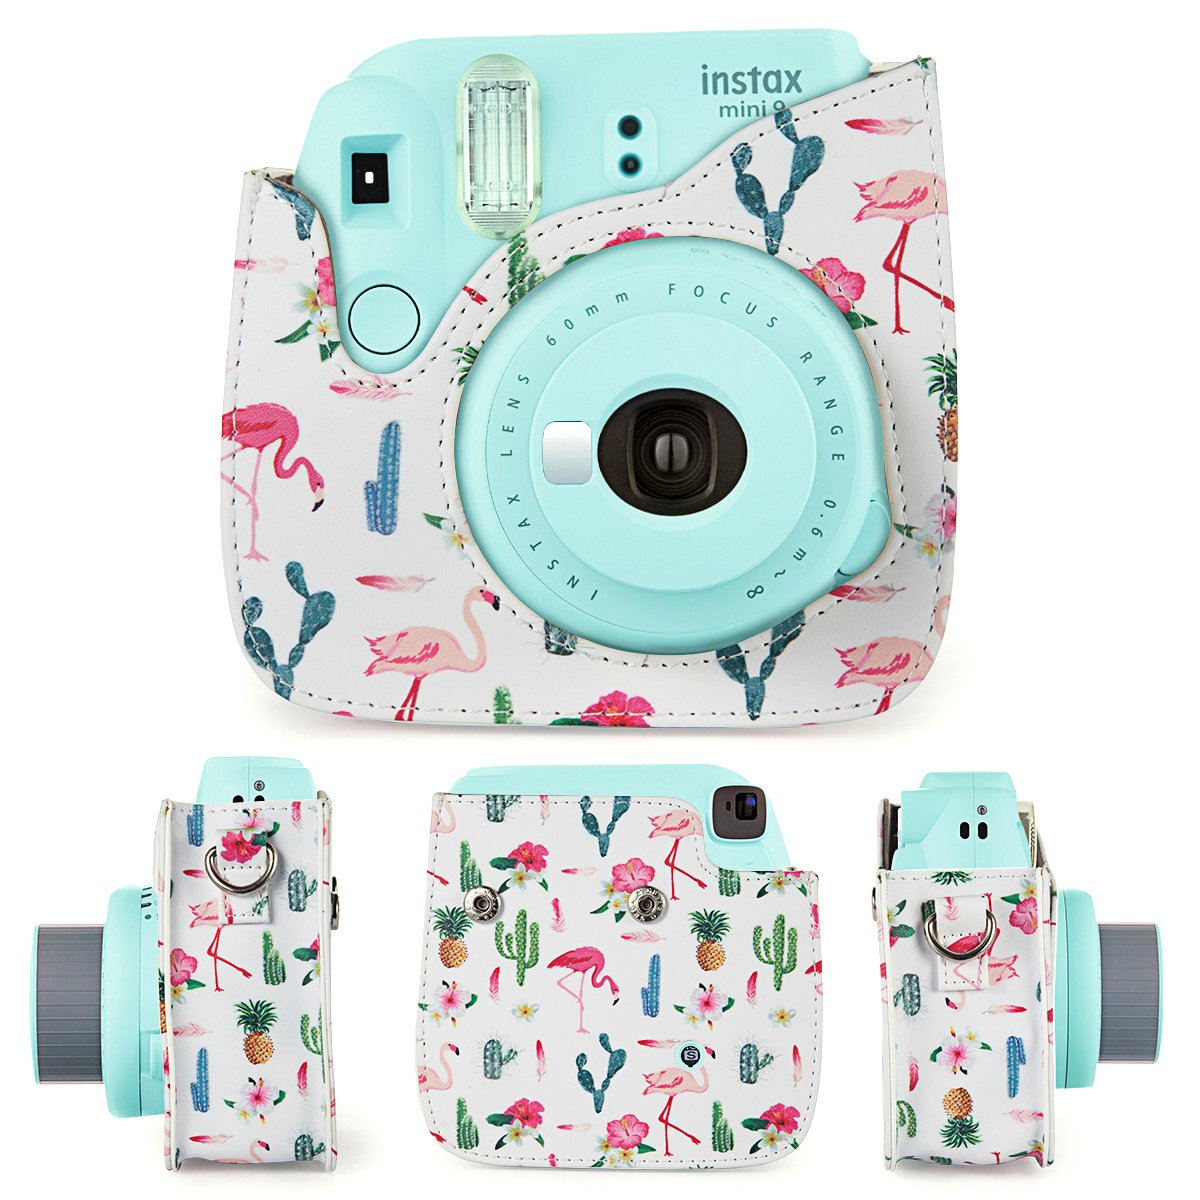 CAIUL Compatible Mini 9 Camera Case Bundle with Album Smile Filters and Other Accessories for Fujifilm Instax Mini 9 8 8+